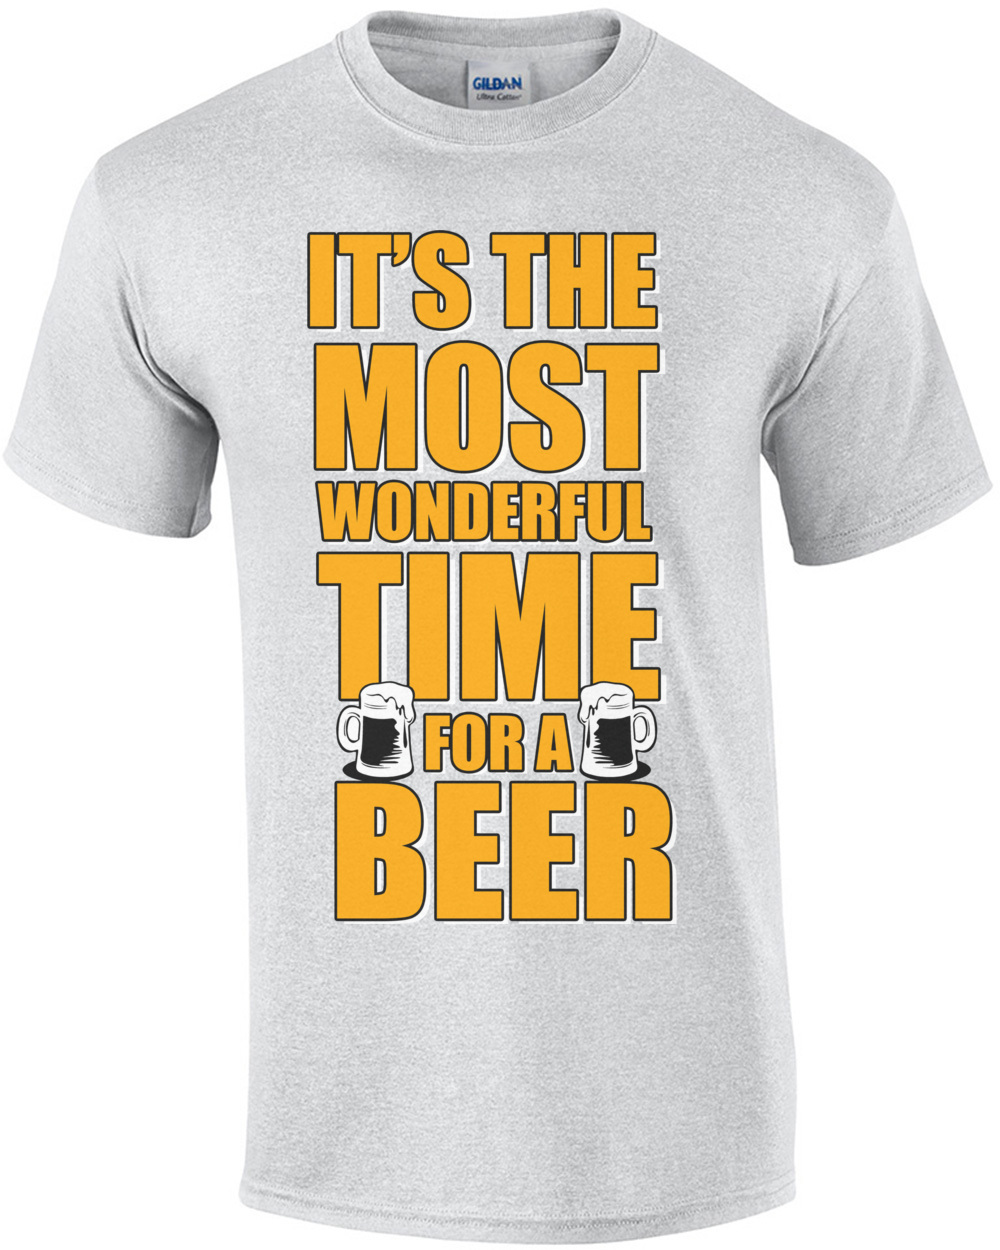 2d0292763 its-the-most-wonderful-time-for-a-beer-tshirt-mens-regular-ash.jpg